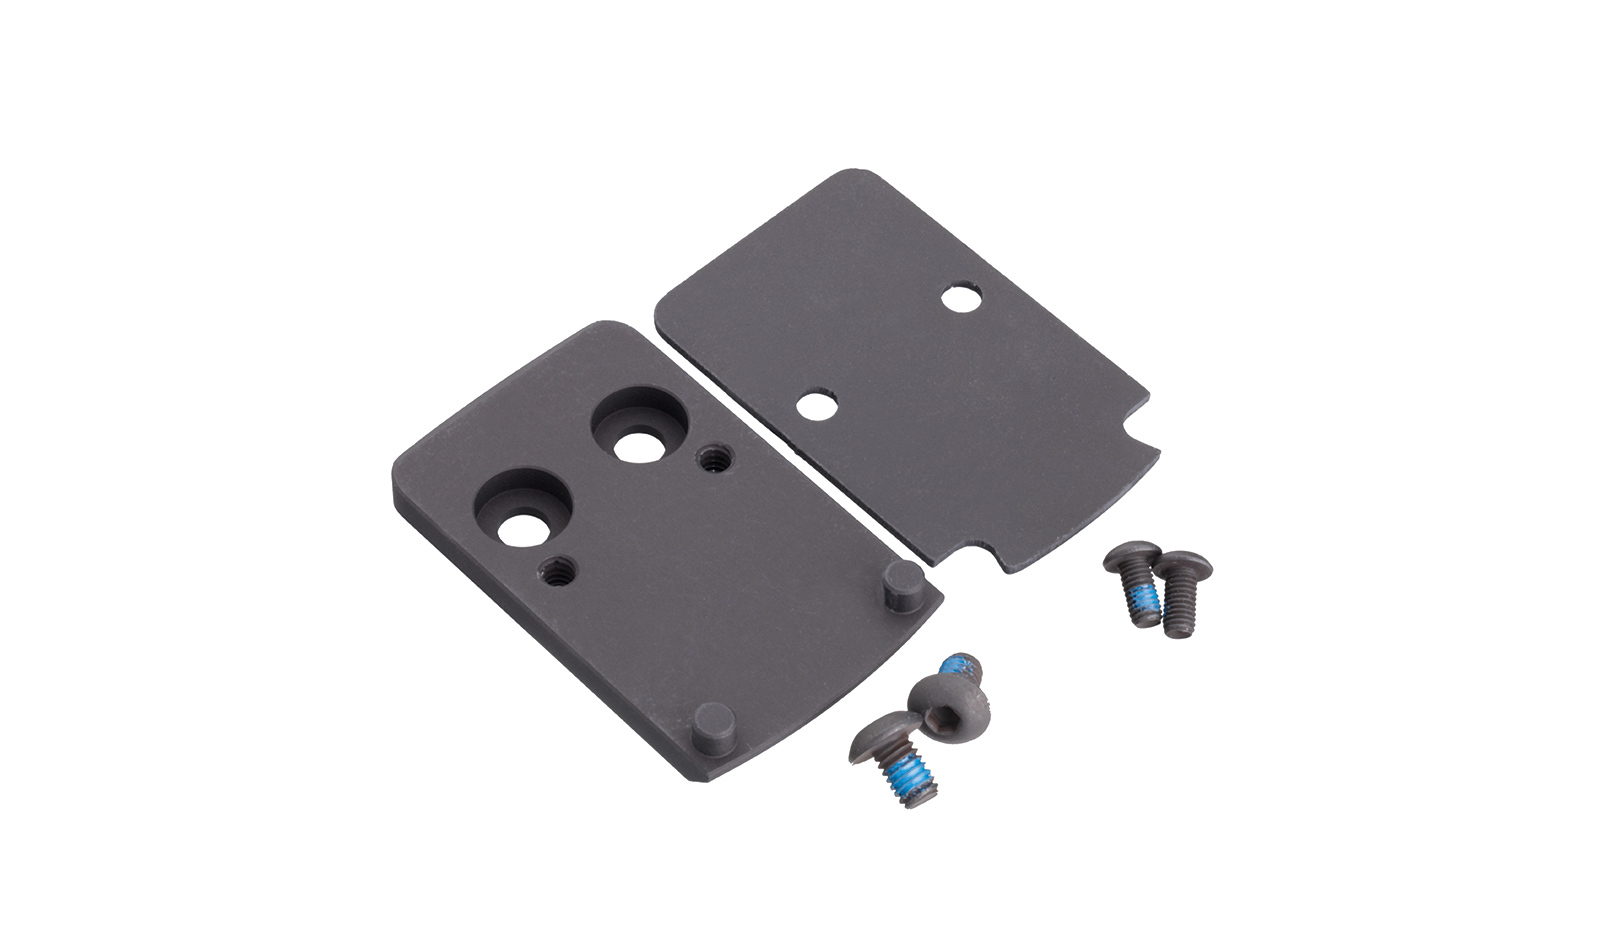 Trijicon RMR®/SRO® Adapter Plate for RedDot™ Mounts (MS17-MS32)